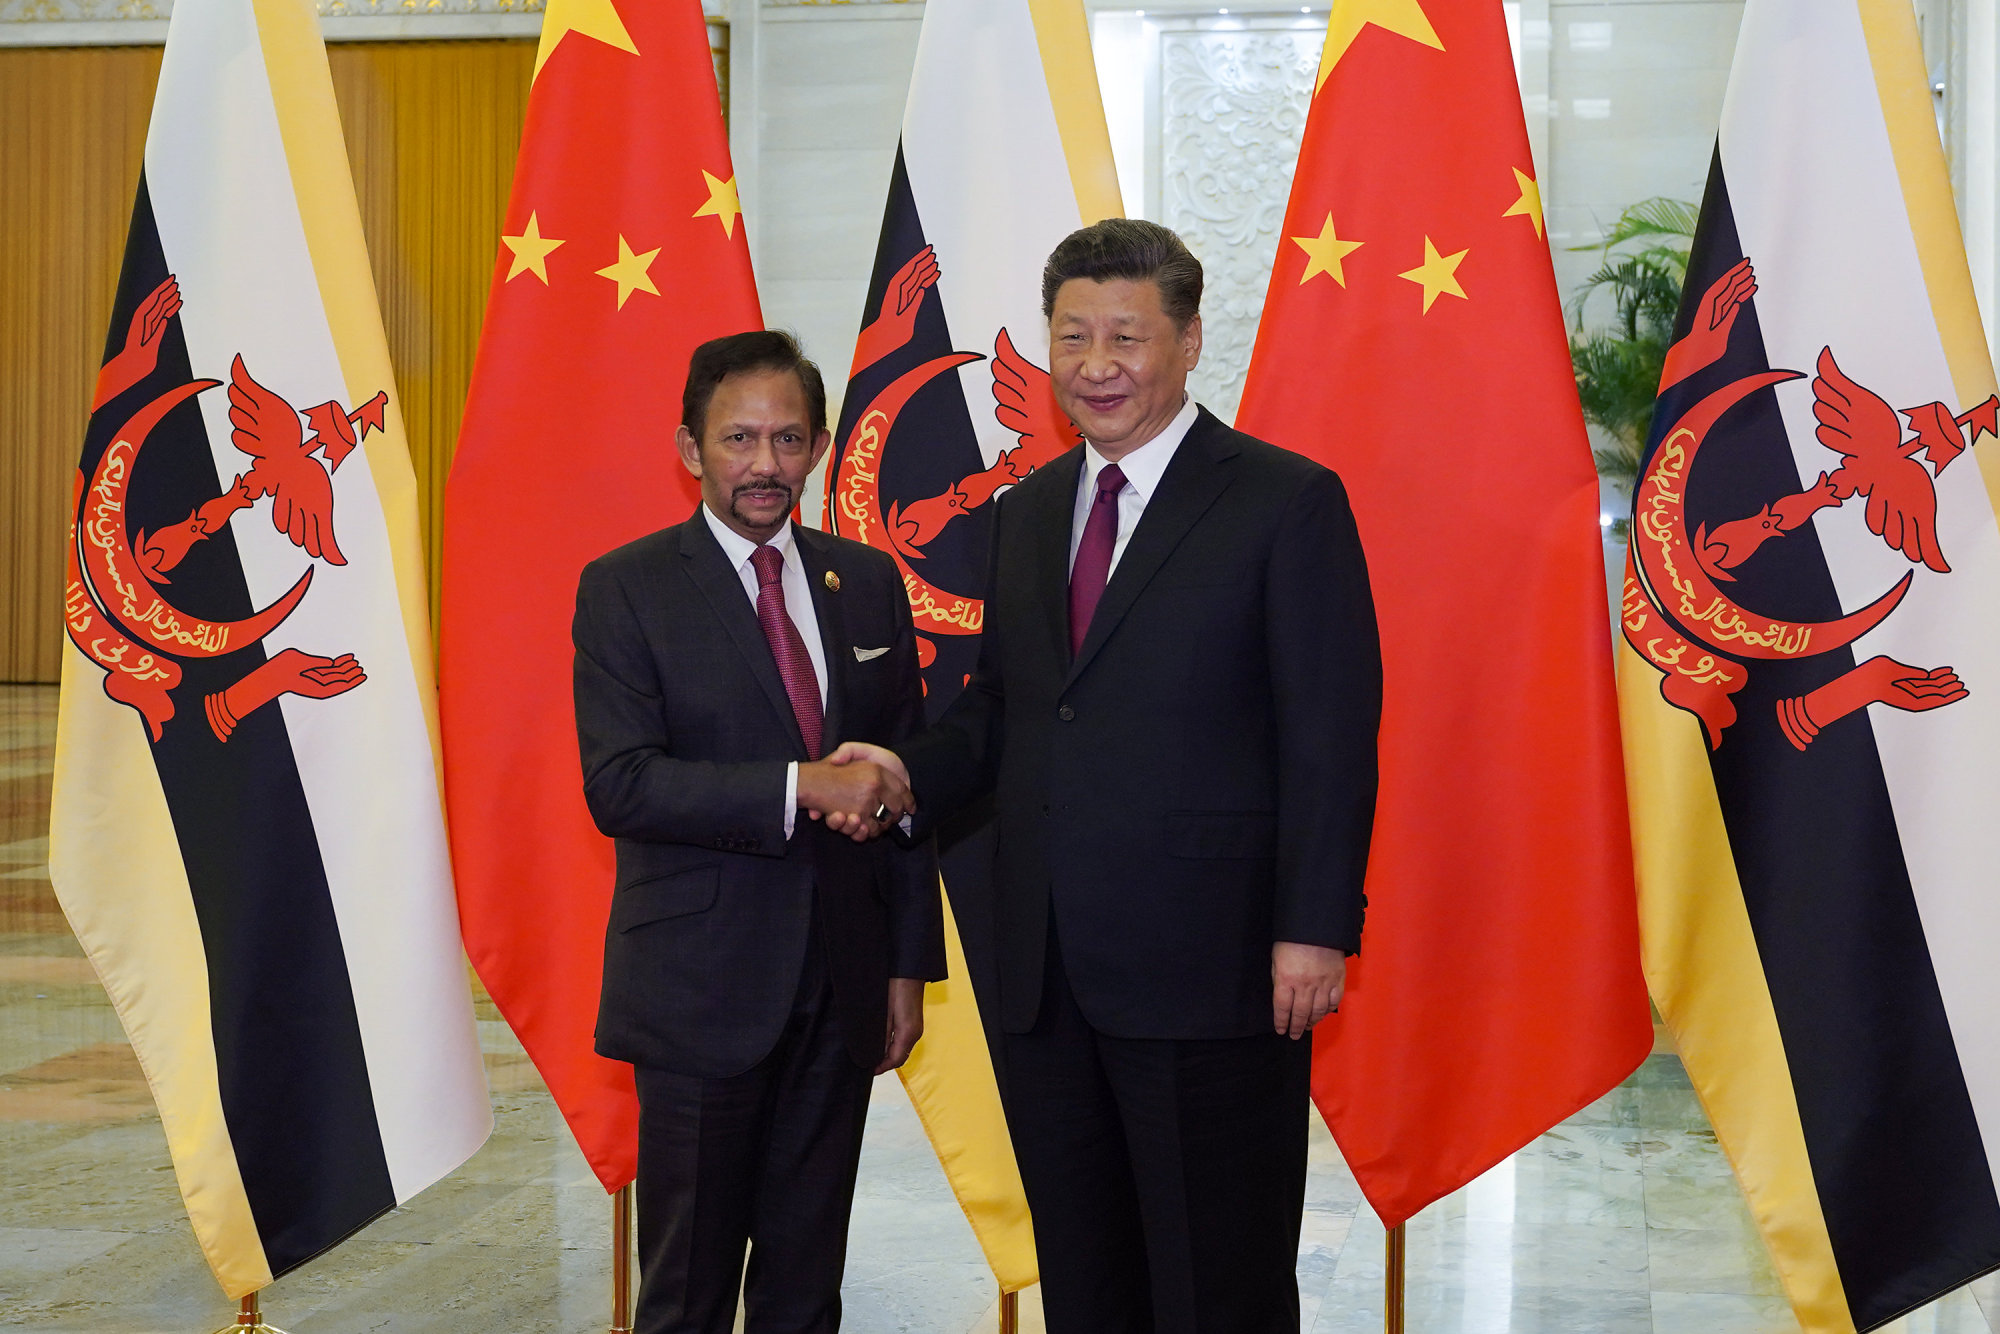 Chinese President Xi Jinping (right) shakes hands with Brunei Sultan Hassanal Bolkiah before the bilateral meeting of the Second Belt and Road Forum at the Great Hall of the People on April 26 in Beijing. | REUTERS